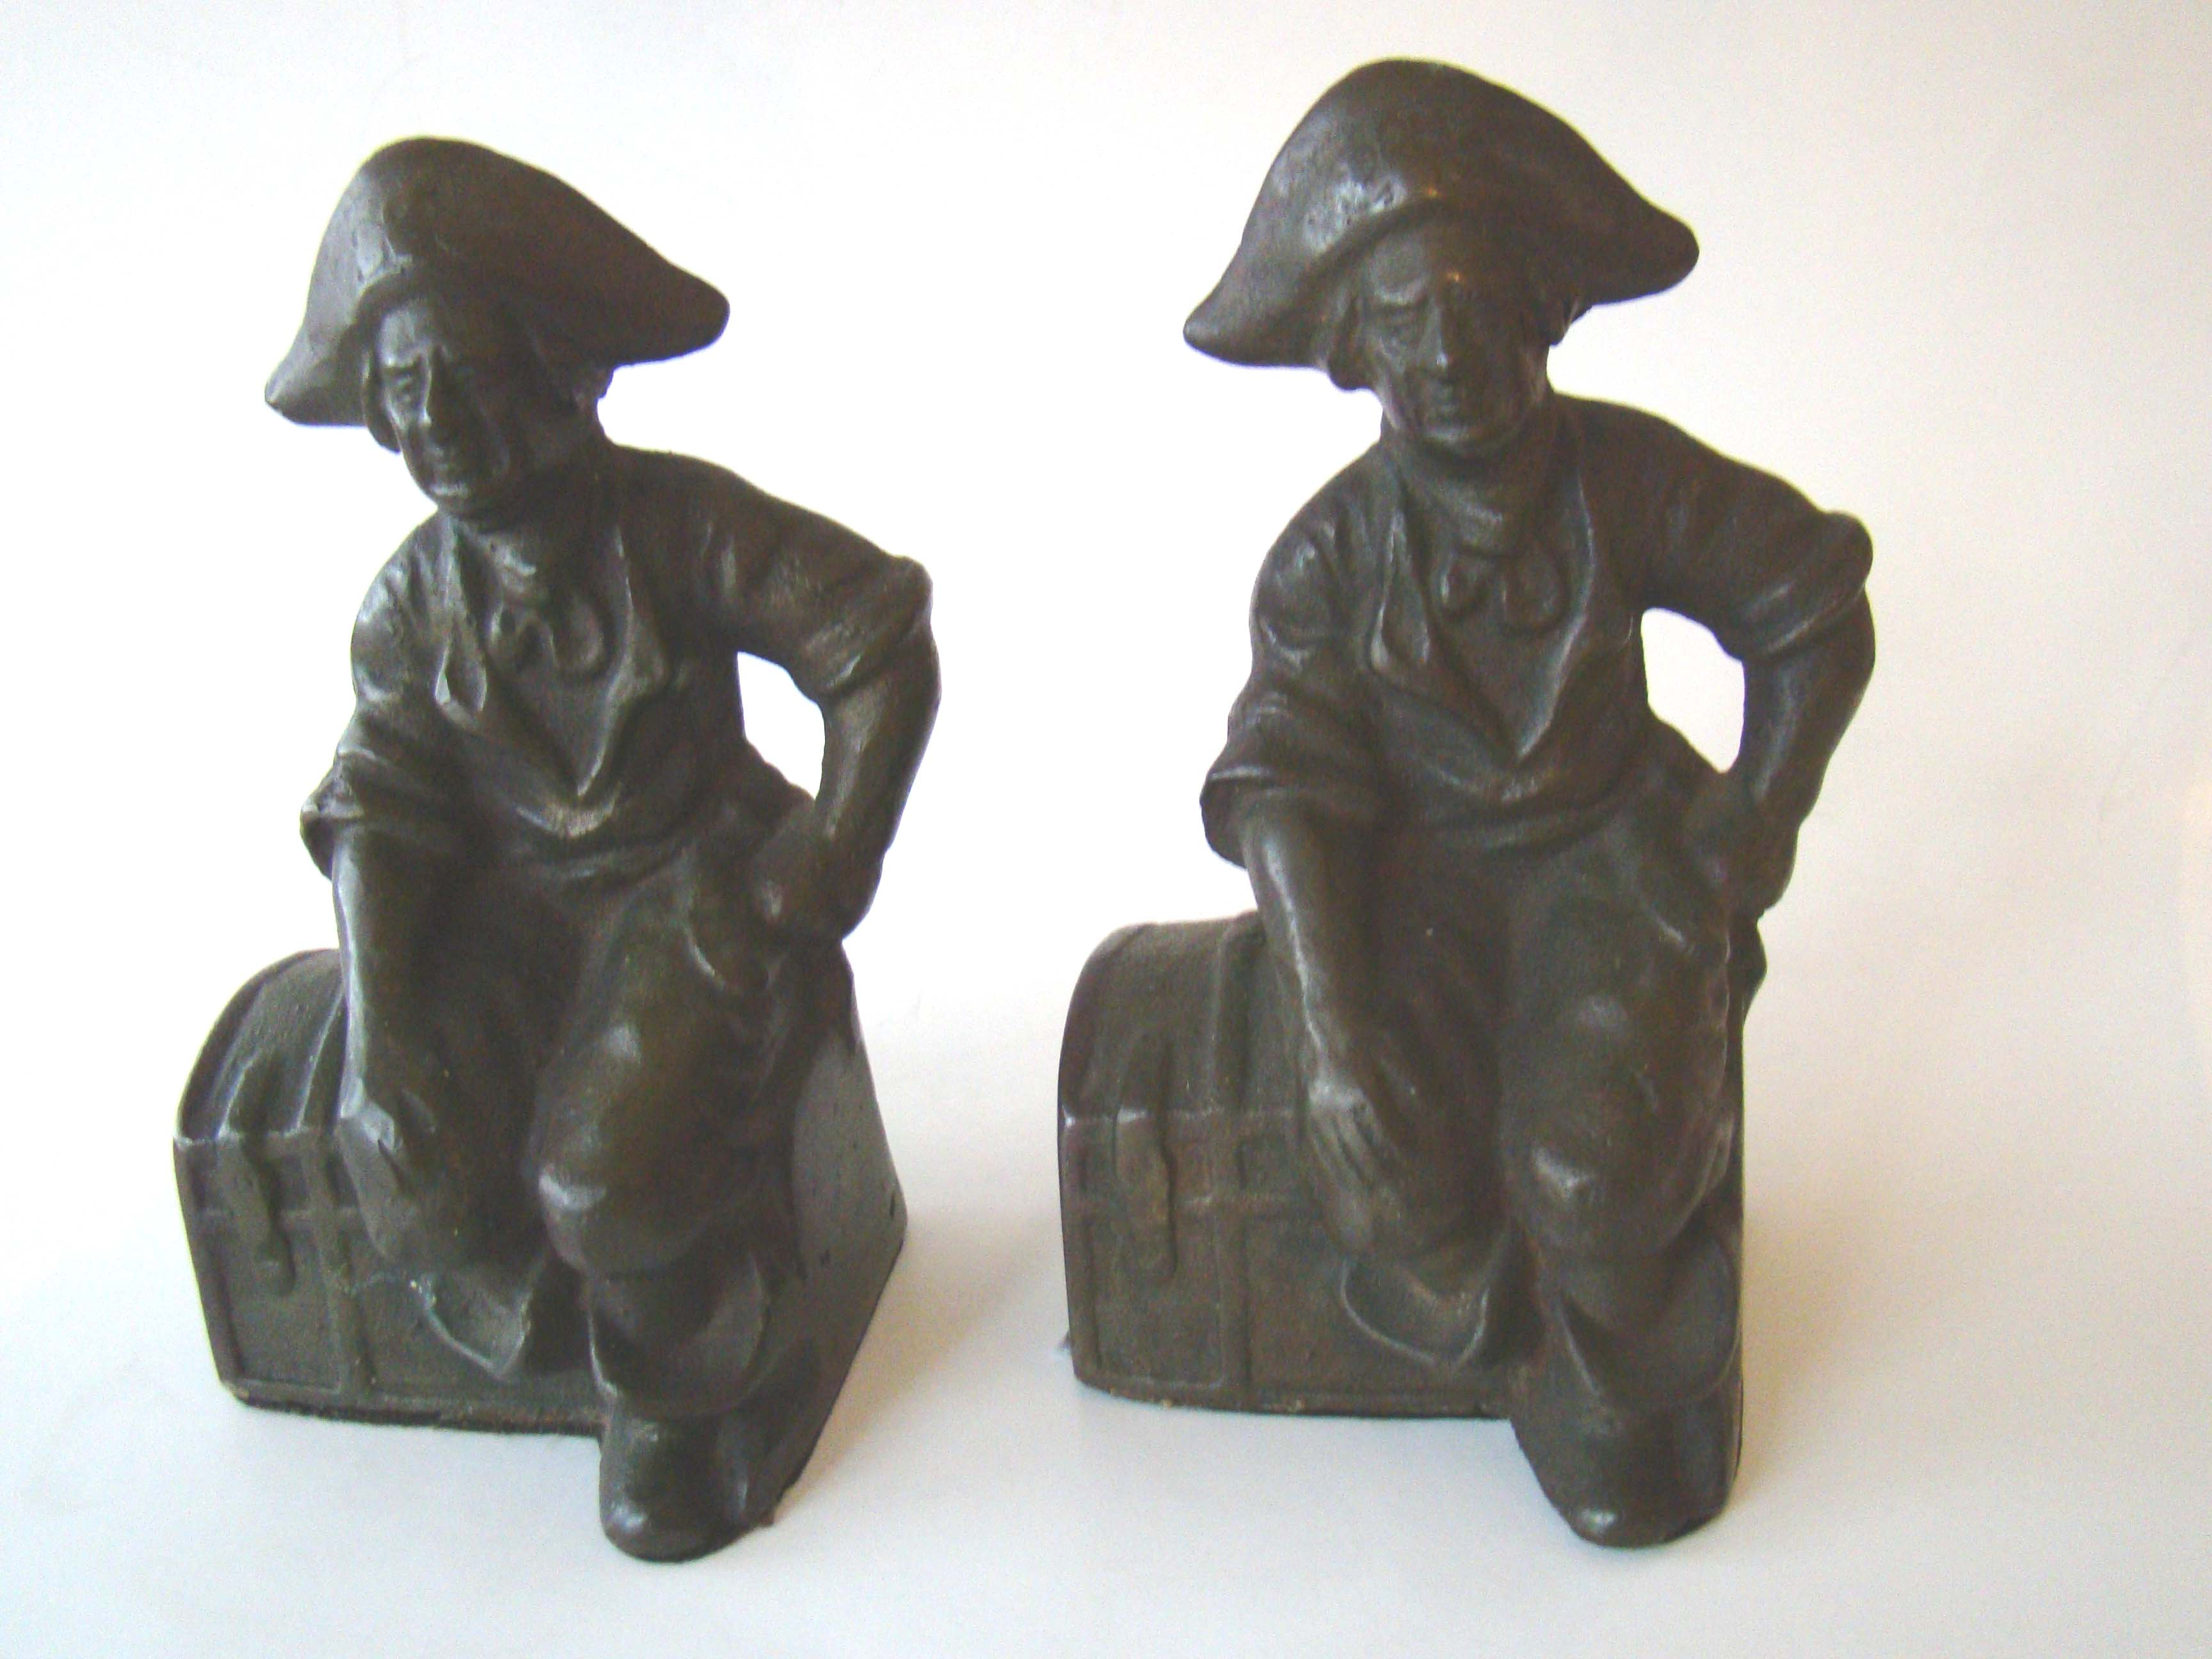 click to view detailed description of A charming pair of antique bookends depicting a pirate sitting on a treasure chest circa 1910-1920